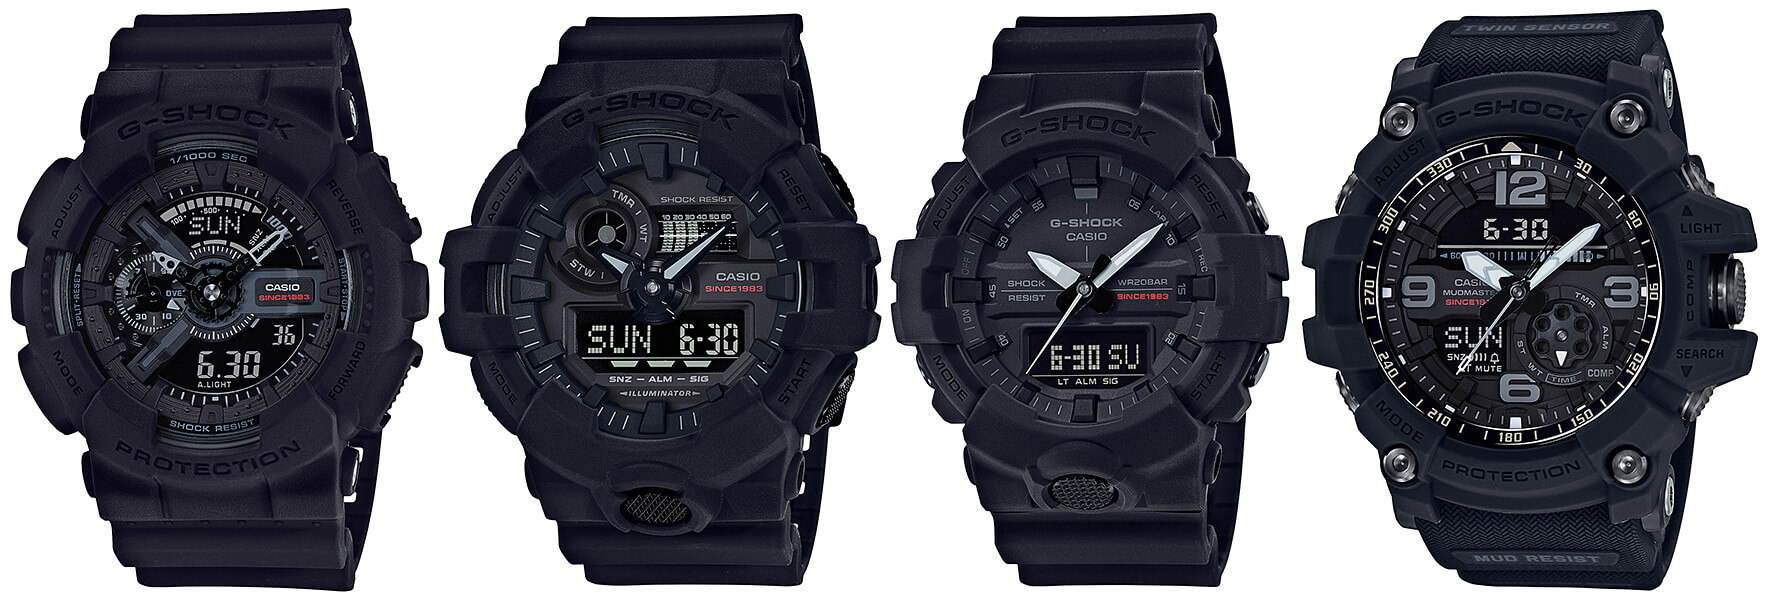 85f23f419cf G-Shock 35th Anniversary Big Bang Black Watch Collection – G-Central ...